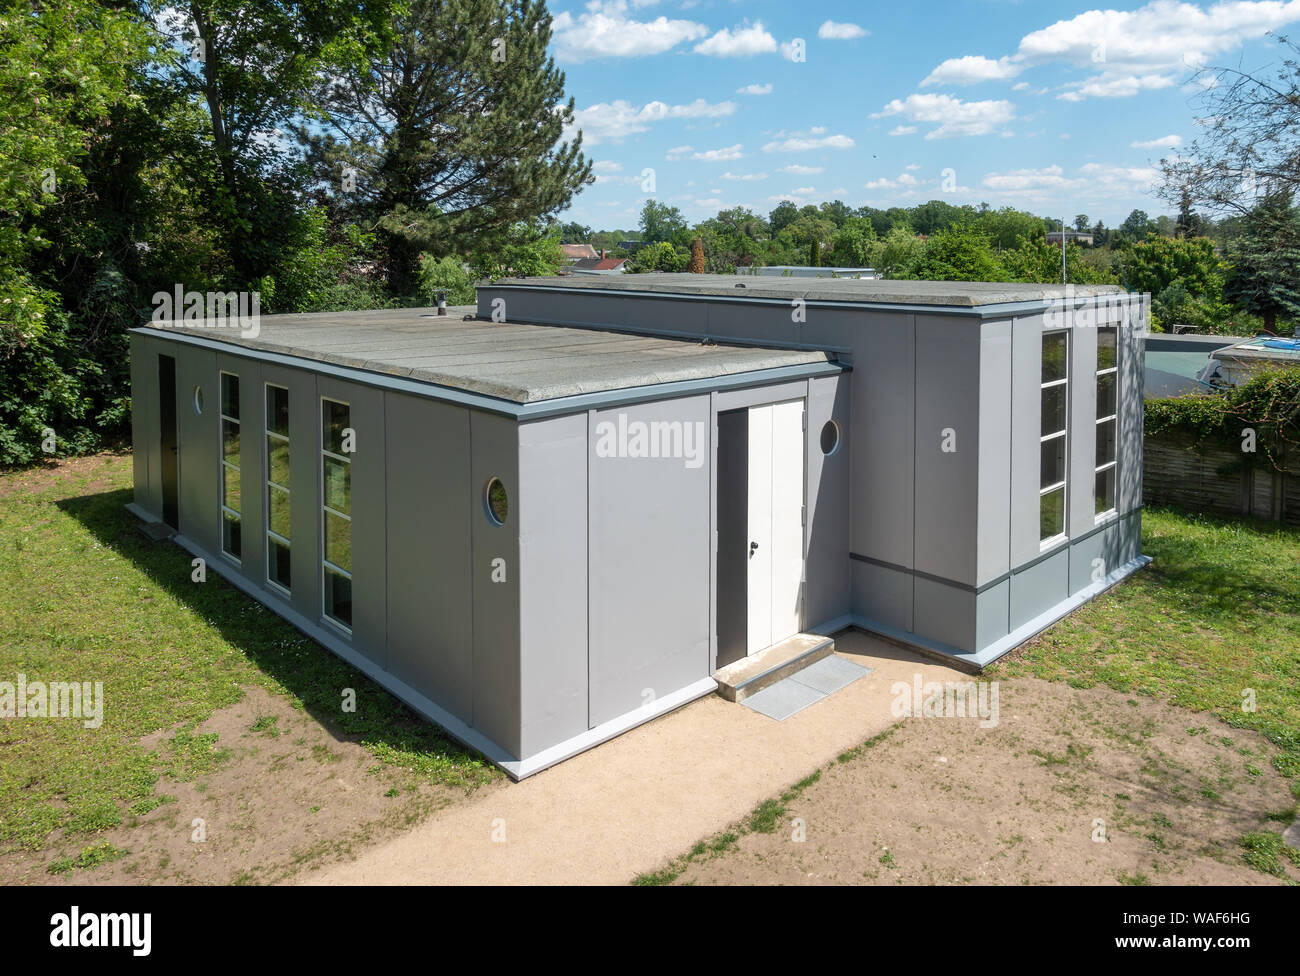 https://c7.alamy.com/comp/WAF6HG/stahlhaus-dessau-steel-house-trten-estate-in-dessau-by-georg-muche-in-1926-as-prefab-experiment-for-the-bauhaus-predicting-container-housing-WAF6HG.jpg